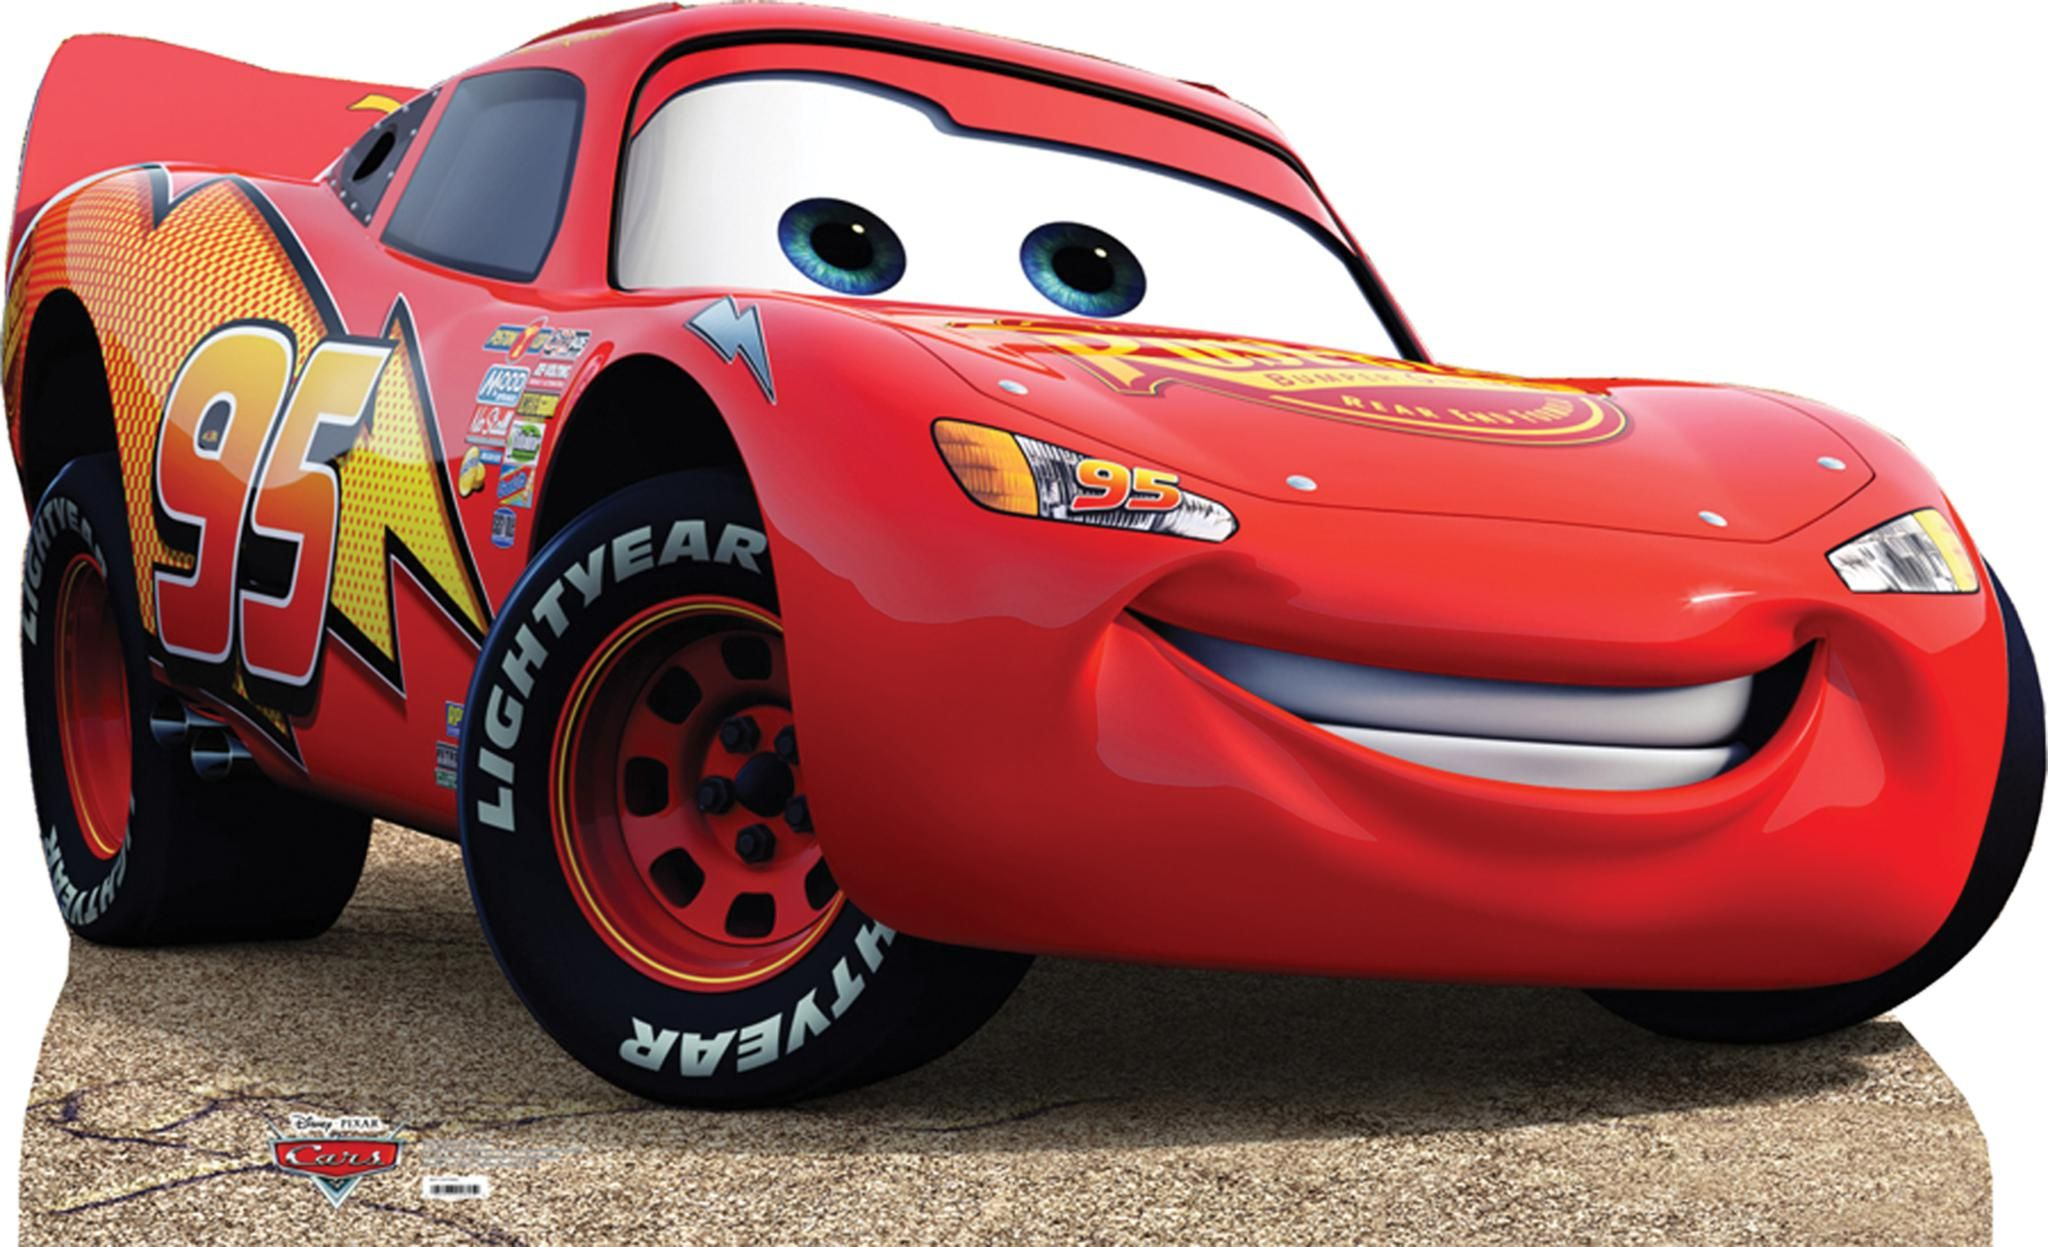 Driving Cars Hd Wallpaper 2253 Wallpaper Viewallpaper Com Disney Cars Disney Mcqueen